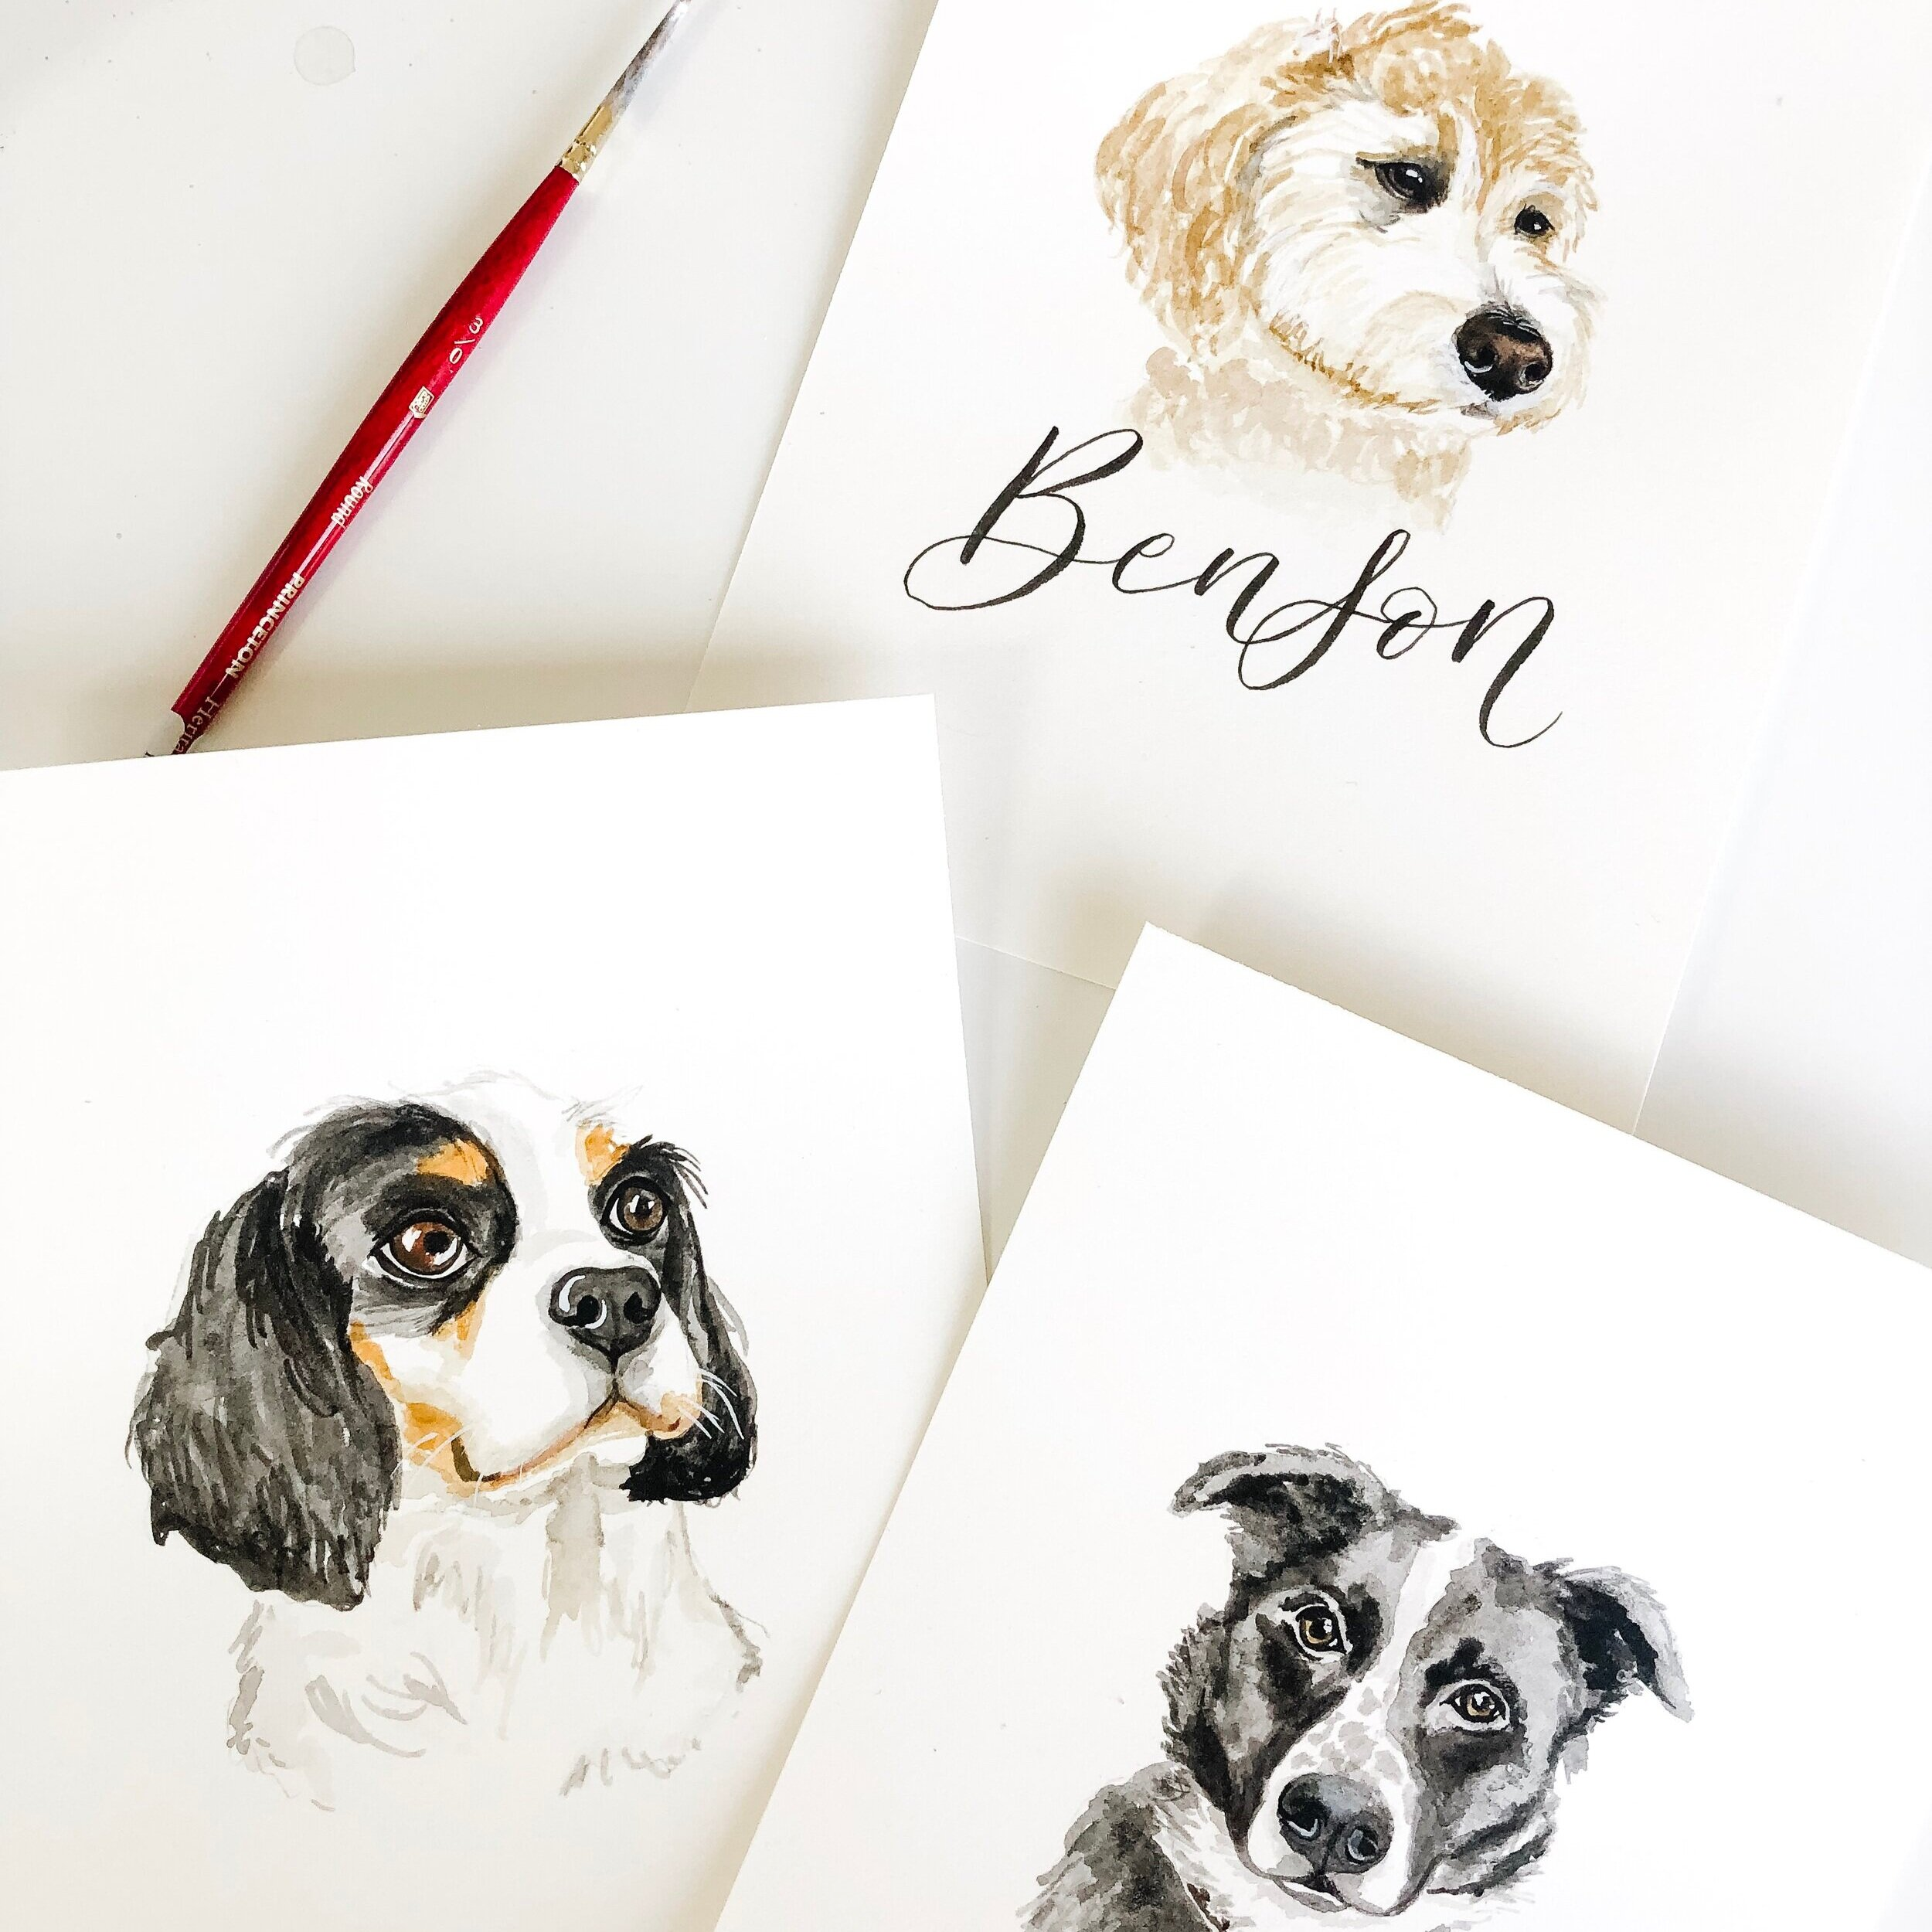 Order a custom watercolour pet portrait of your dog, cat or favourite furry friend! Limited spots. -